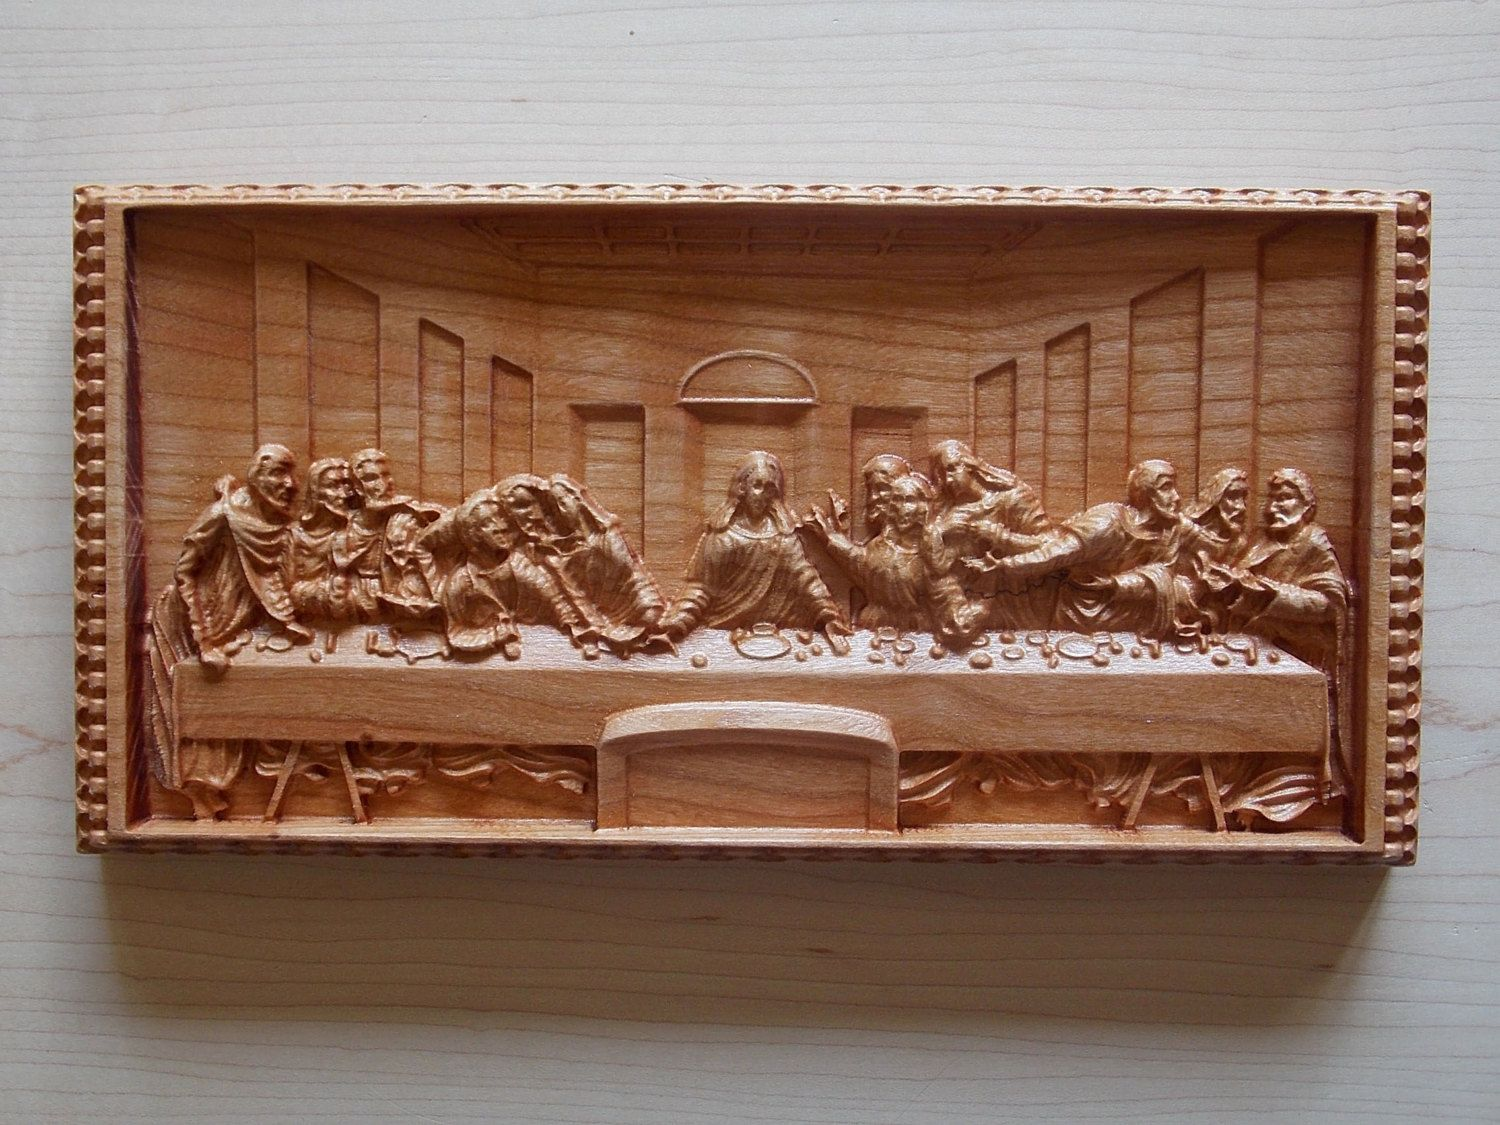 Best last supper wooden carving for sale in etobicoke ontario for